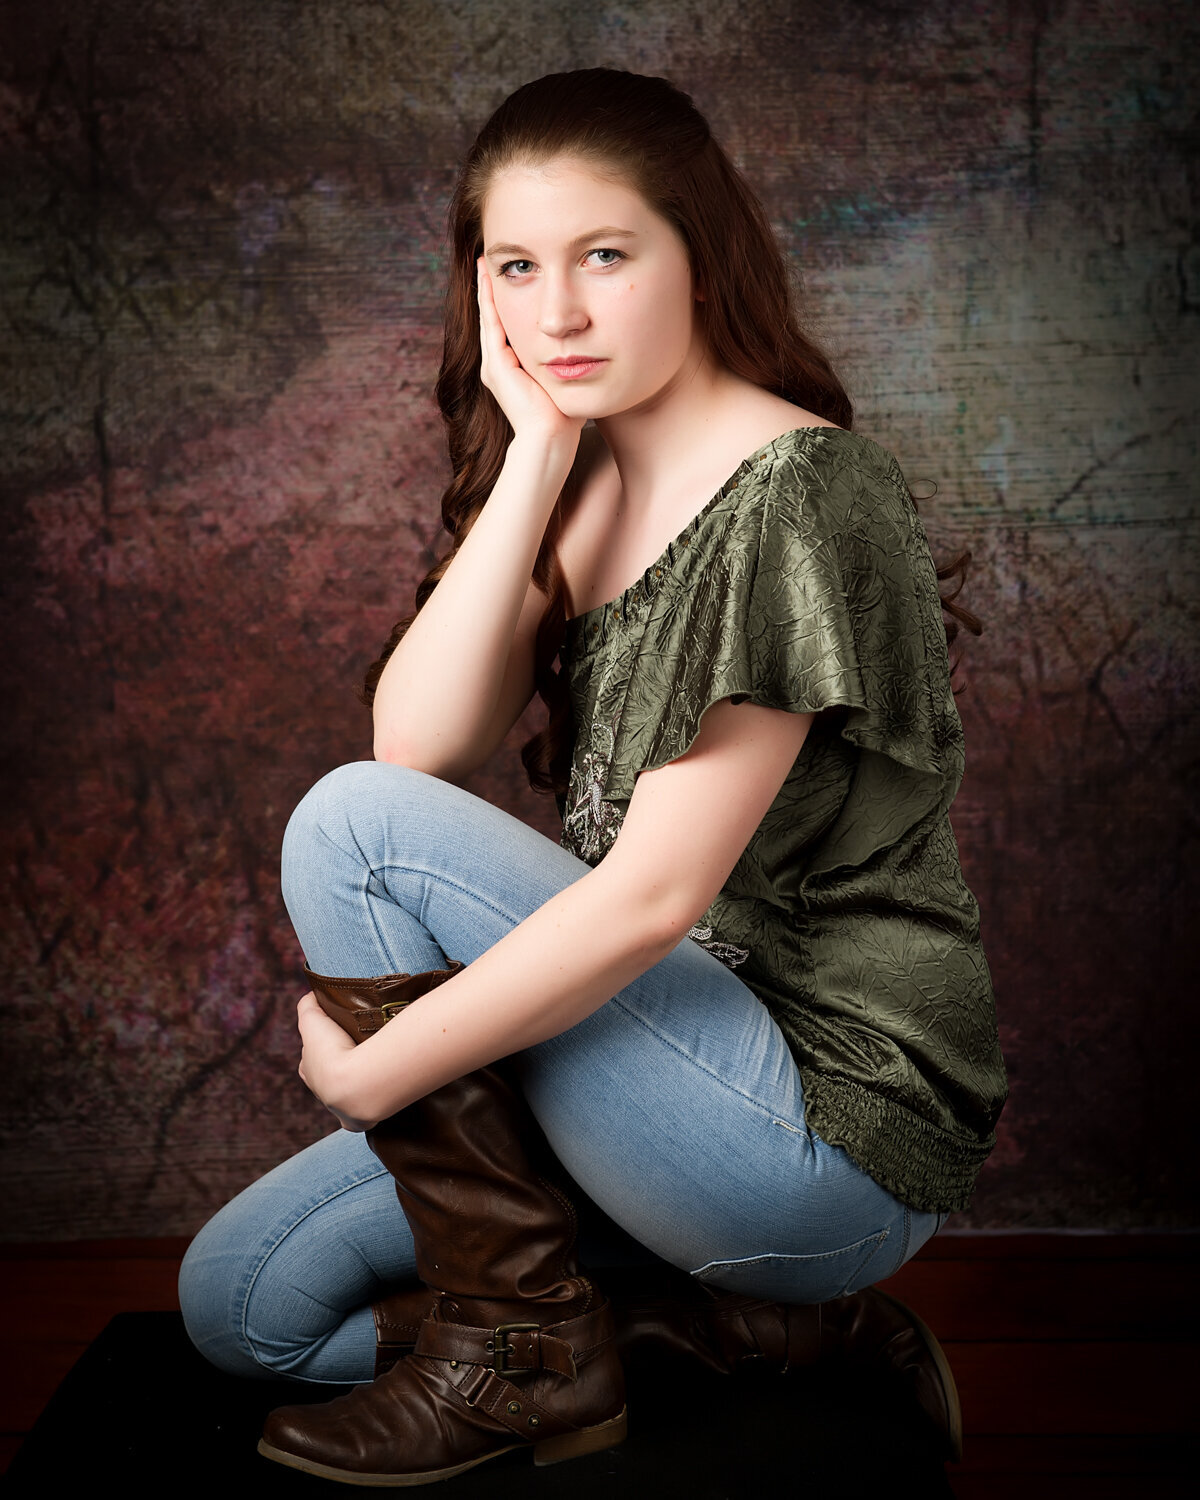 senior girl portrait indoor stdio with boots